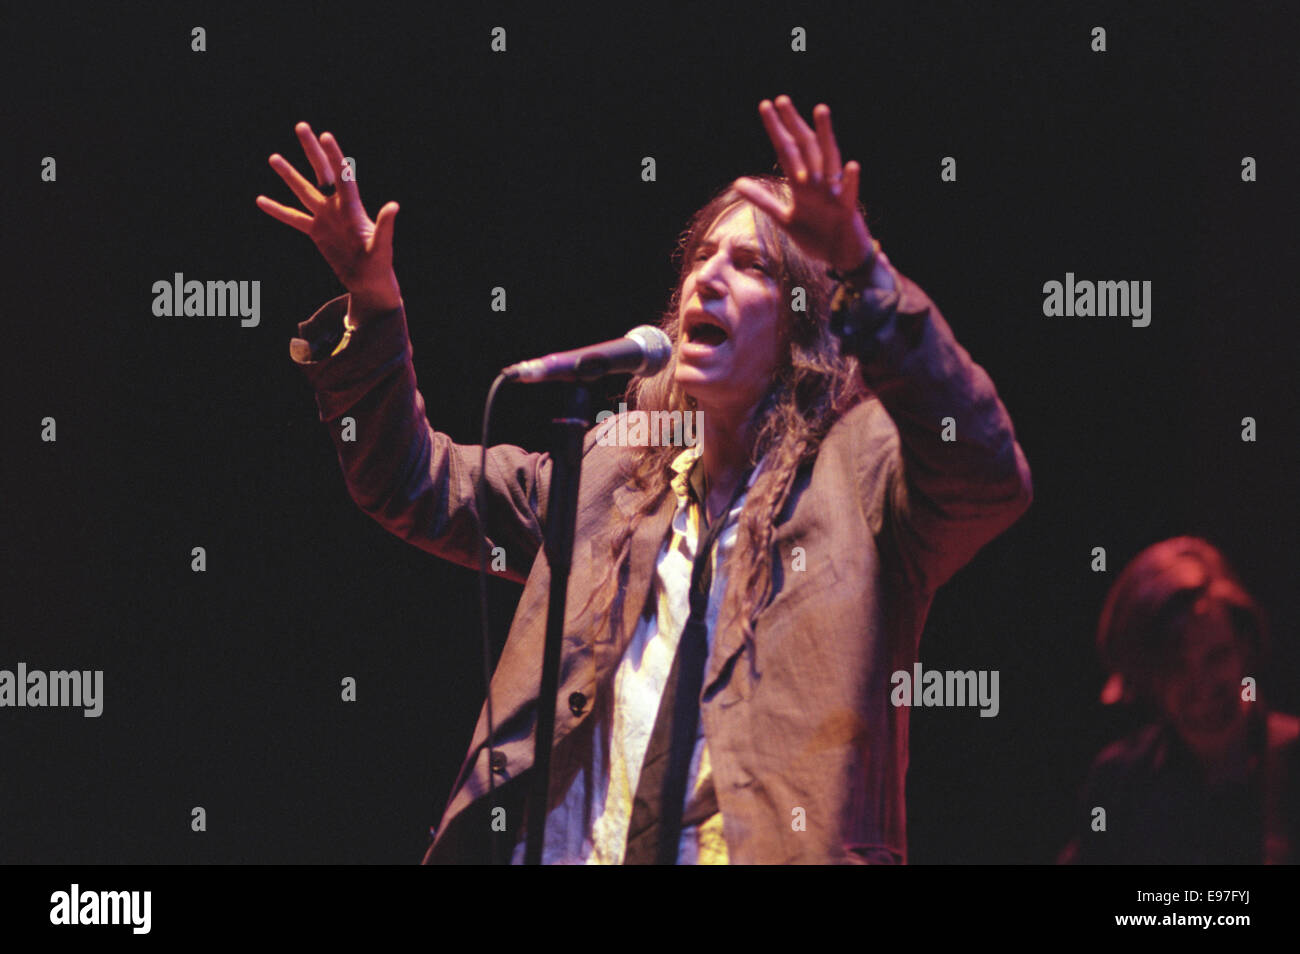 American poet singer Patti Smith in concert at Glasgow Royal Concert Hall, in Glasgow, Scotland, in 1996. Stock Photo